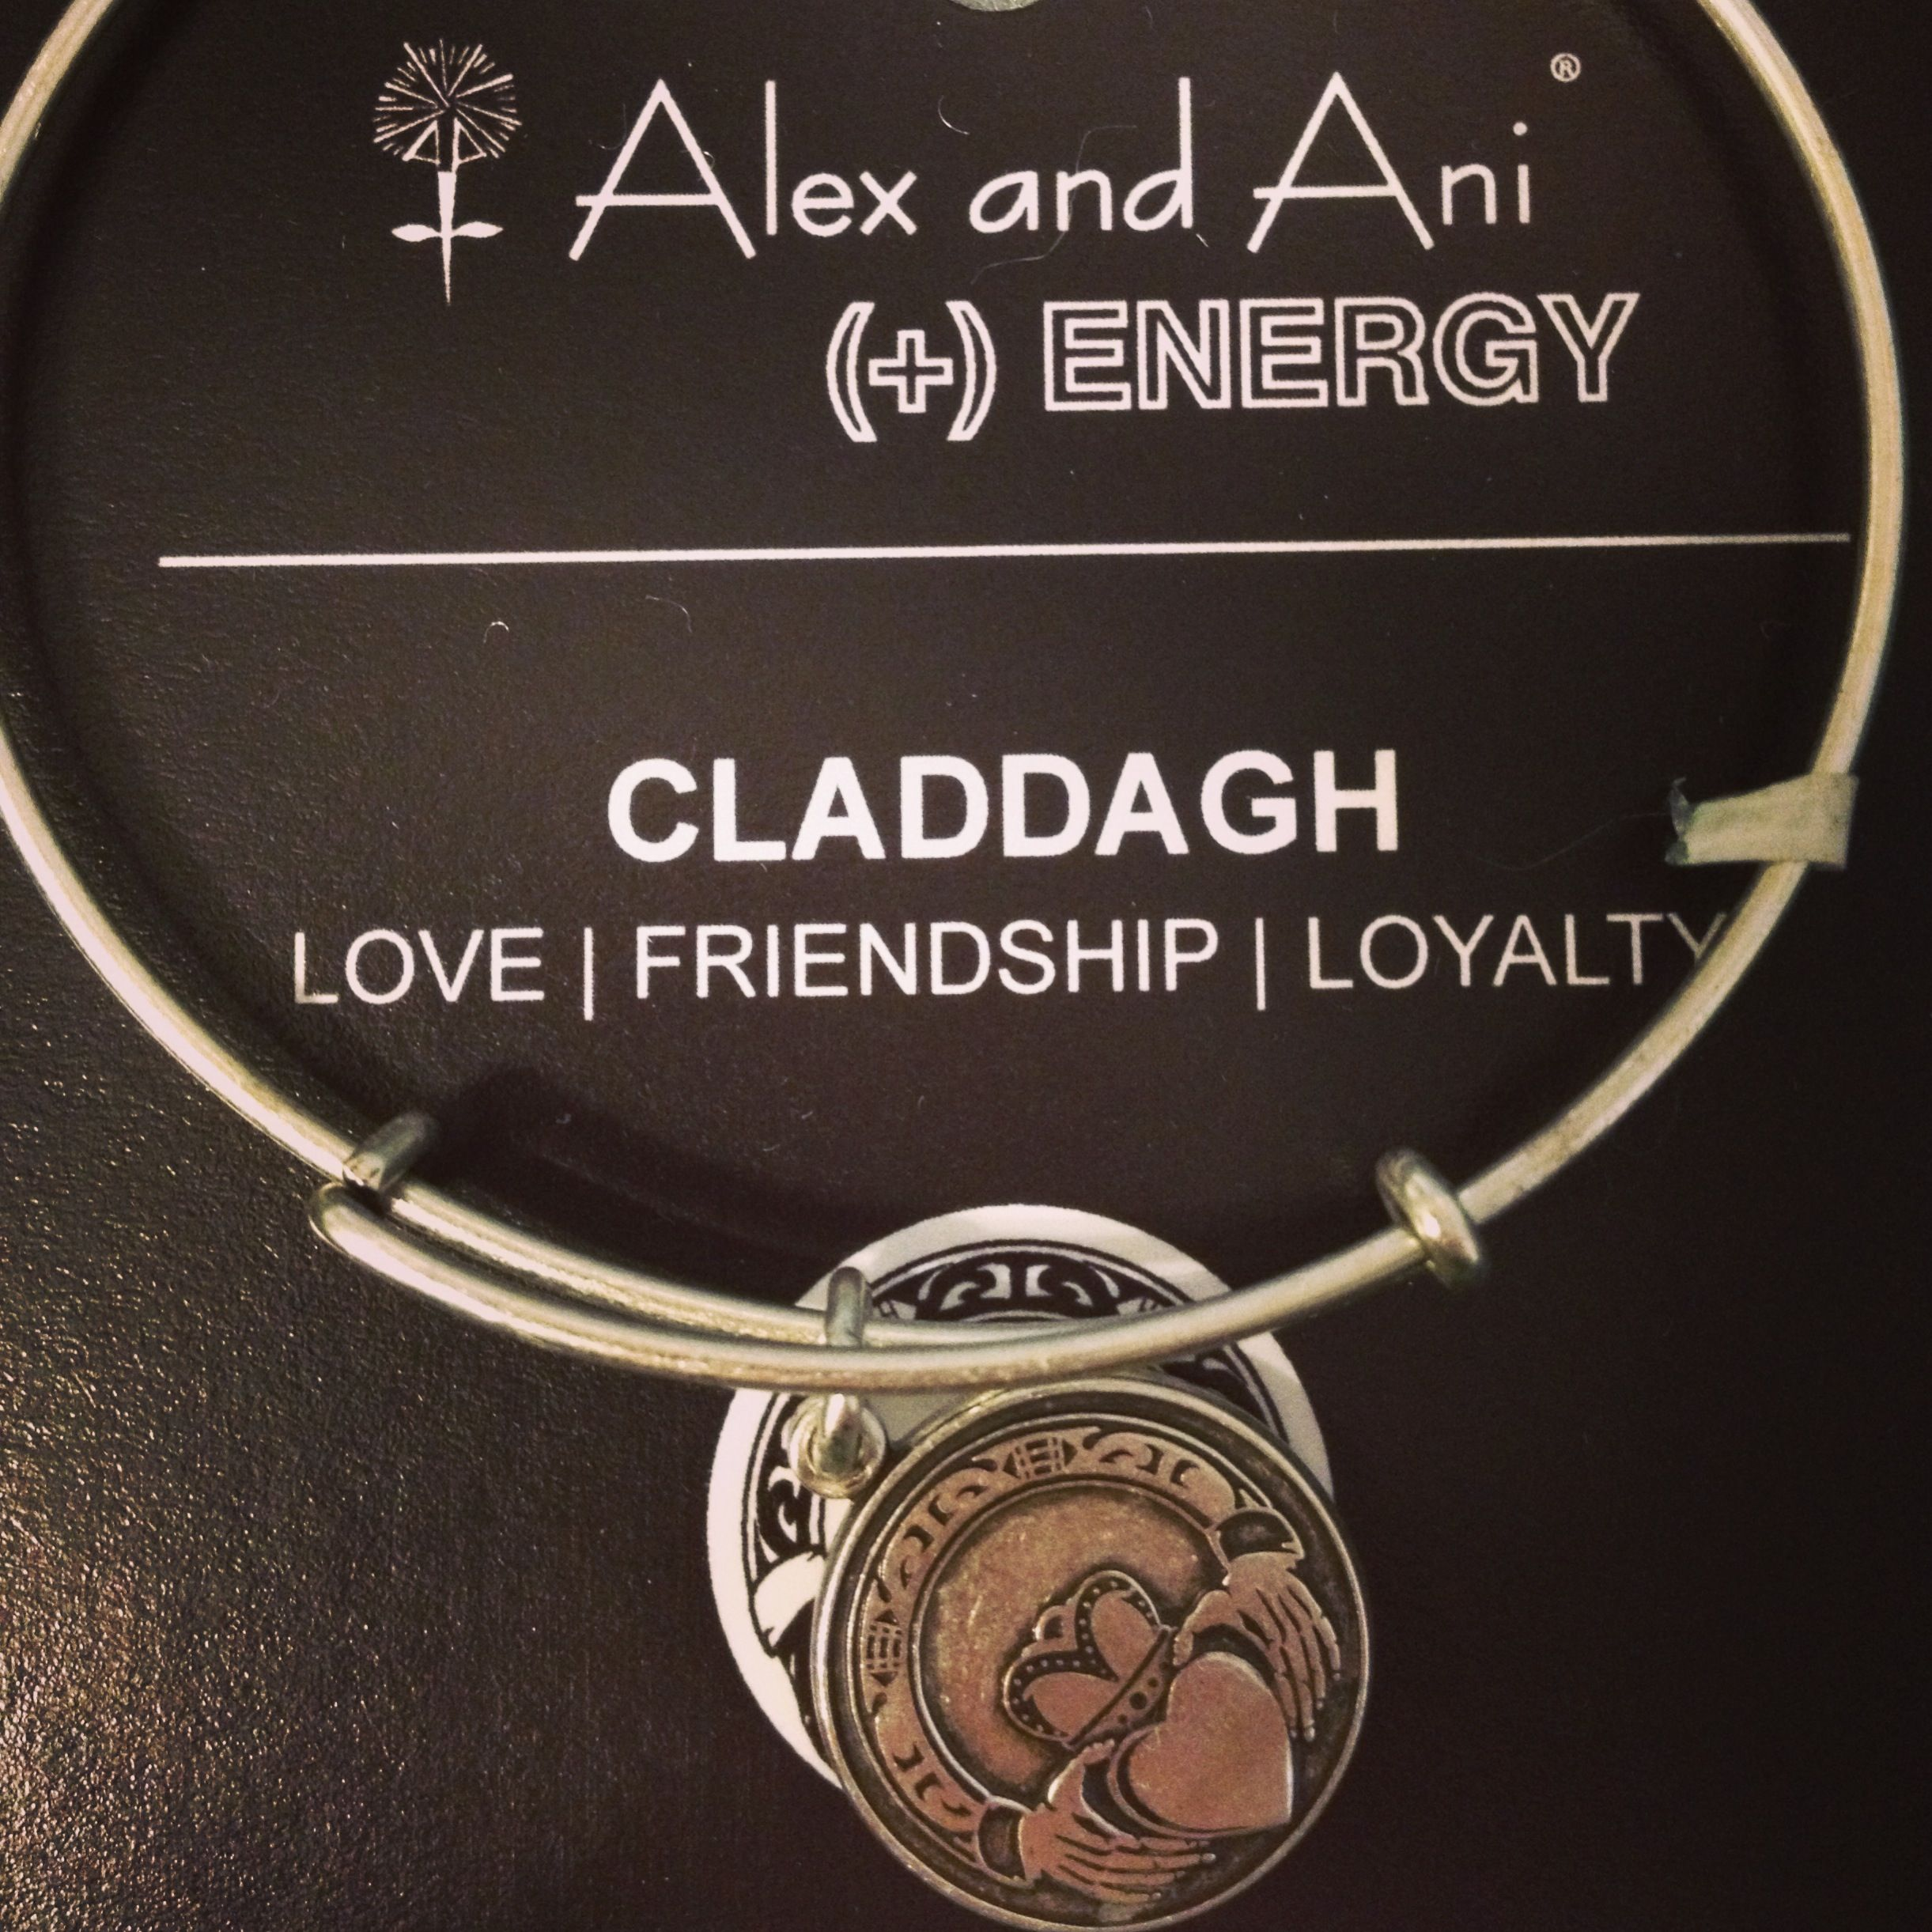 Claddagh Bracelet From Alex And Ani